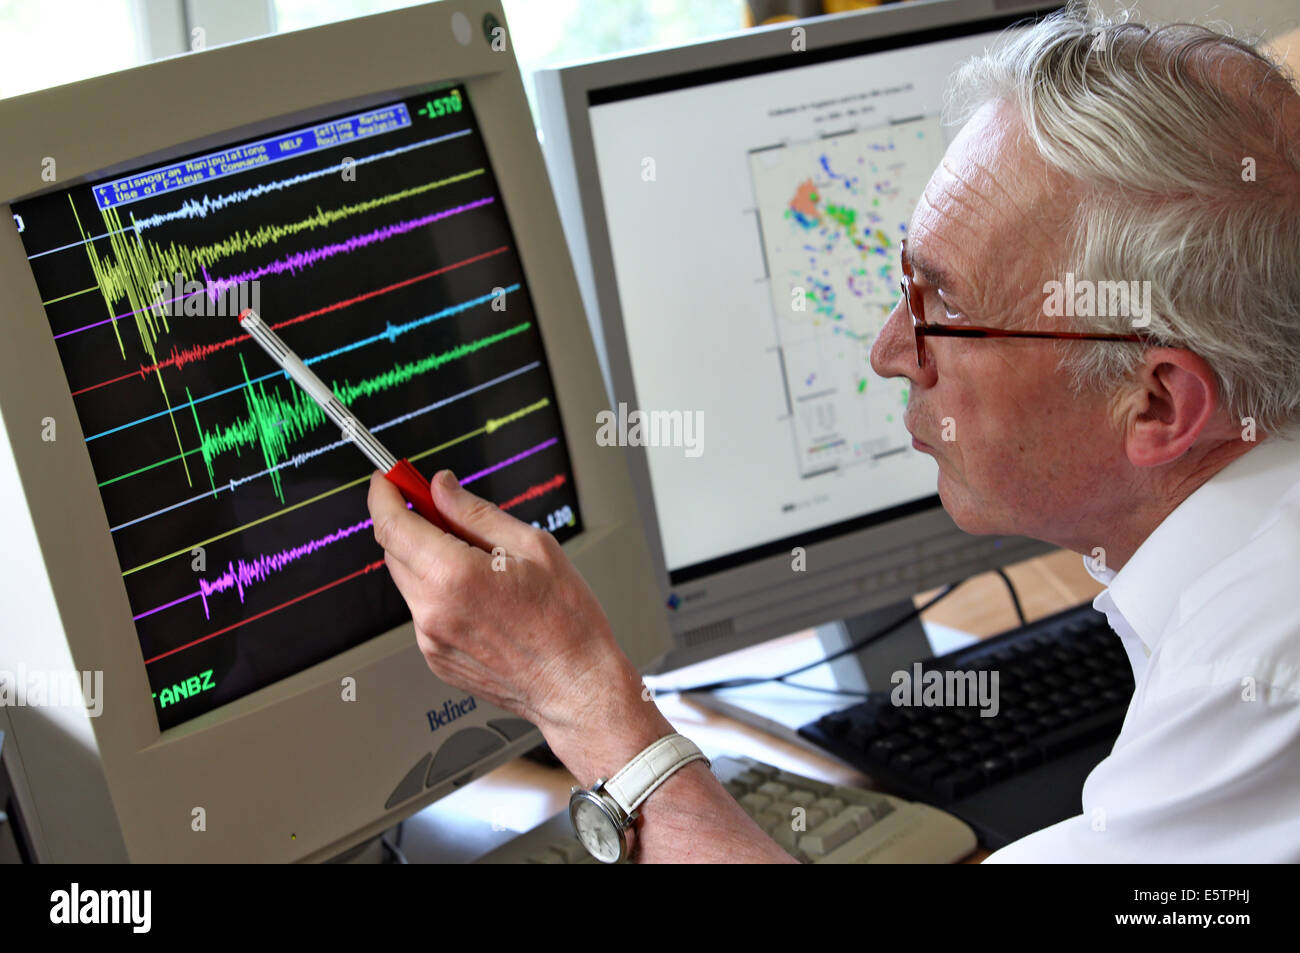 Seismologist High Resolution Stock Photography and Images - Alamy